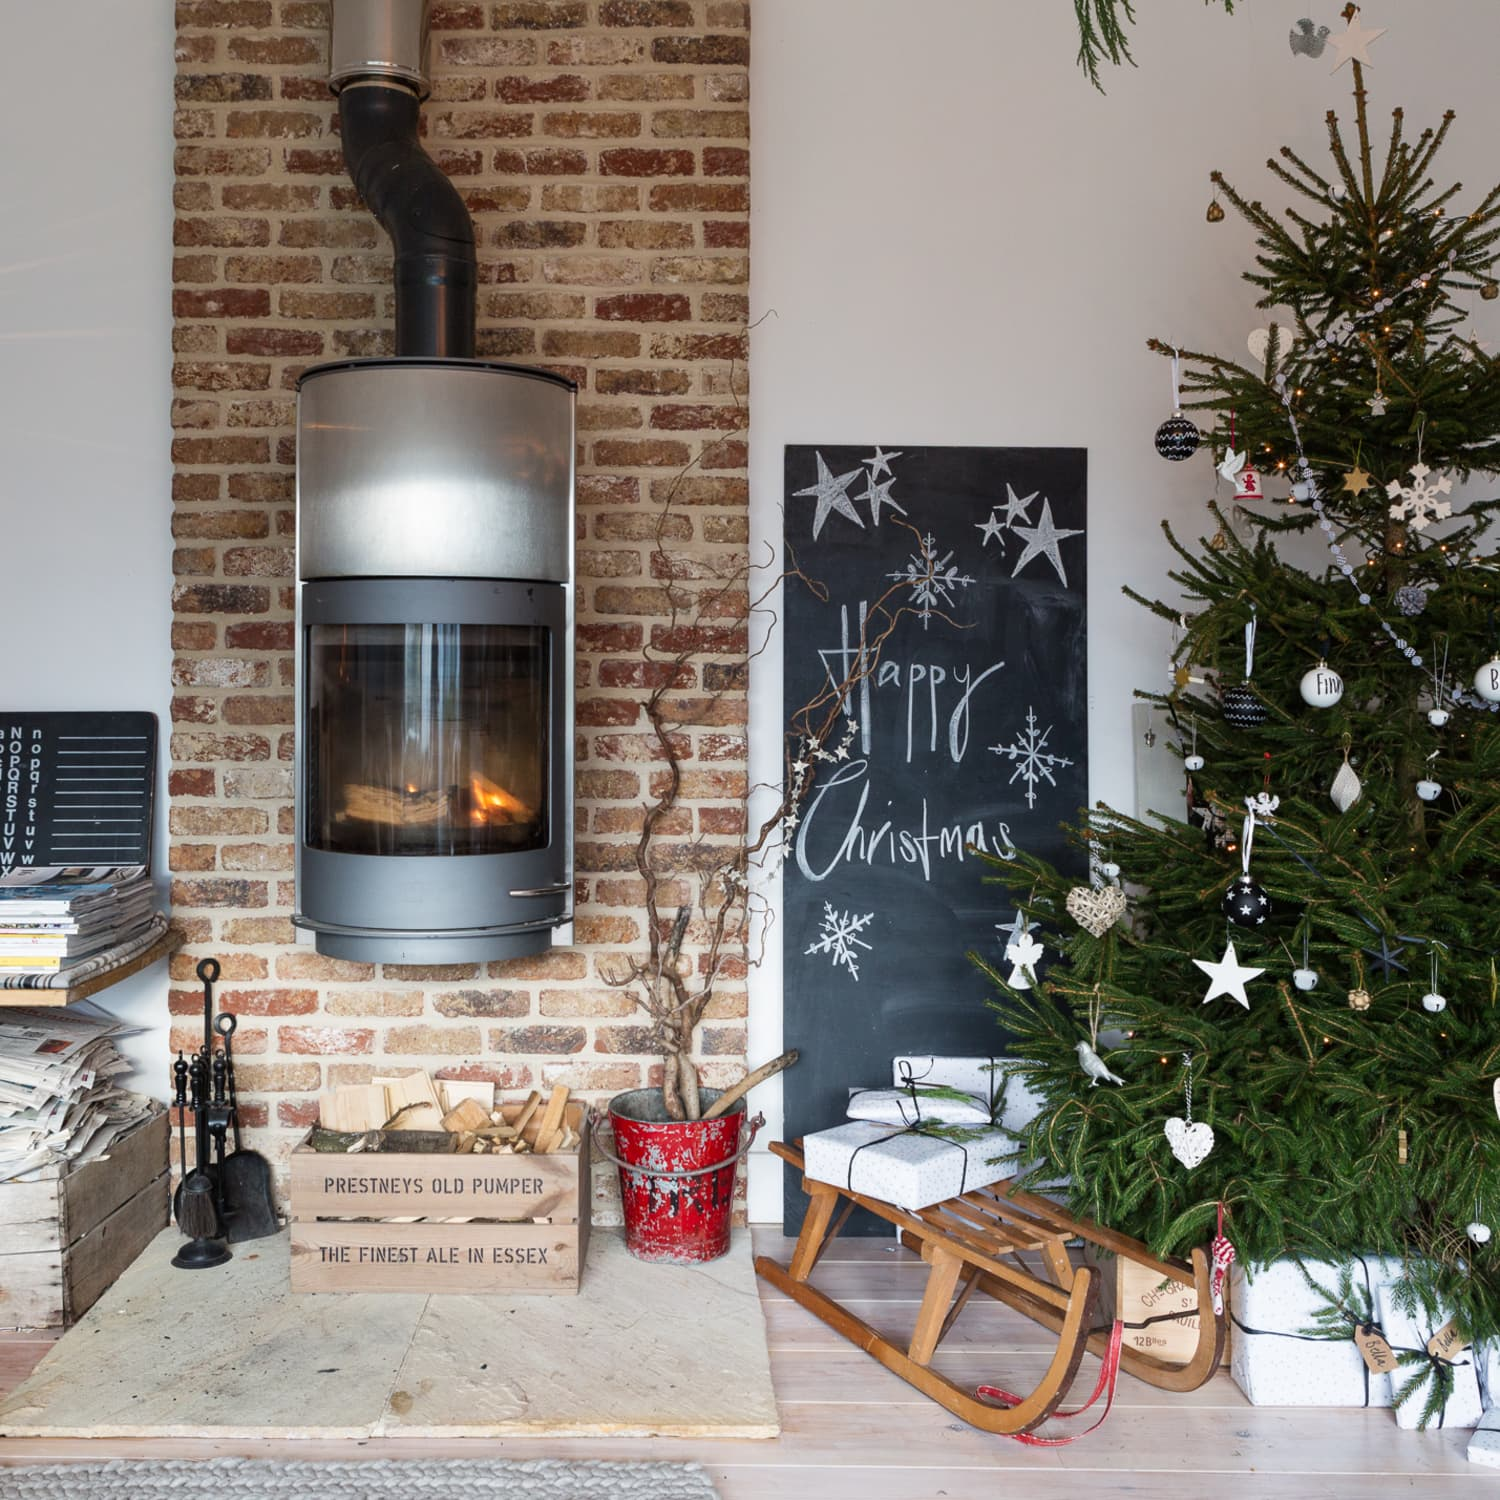 How To Decorate A Small Apartment Or Home For Christmas Apartment Therapy